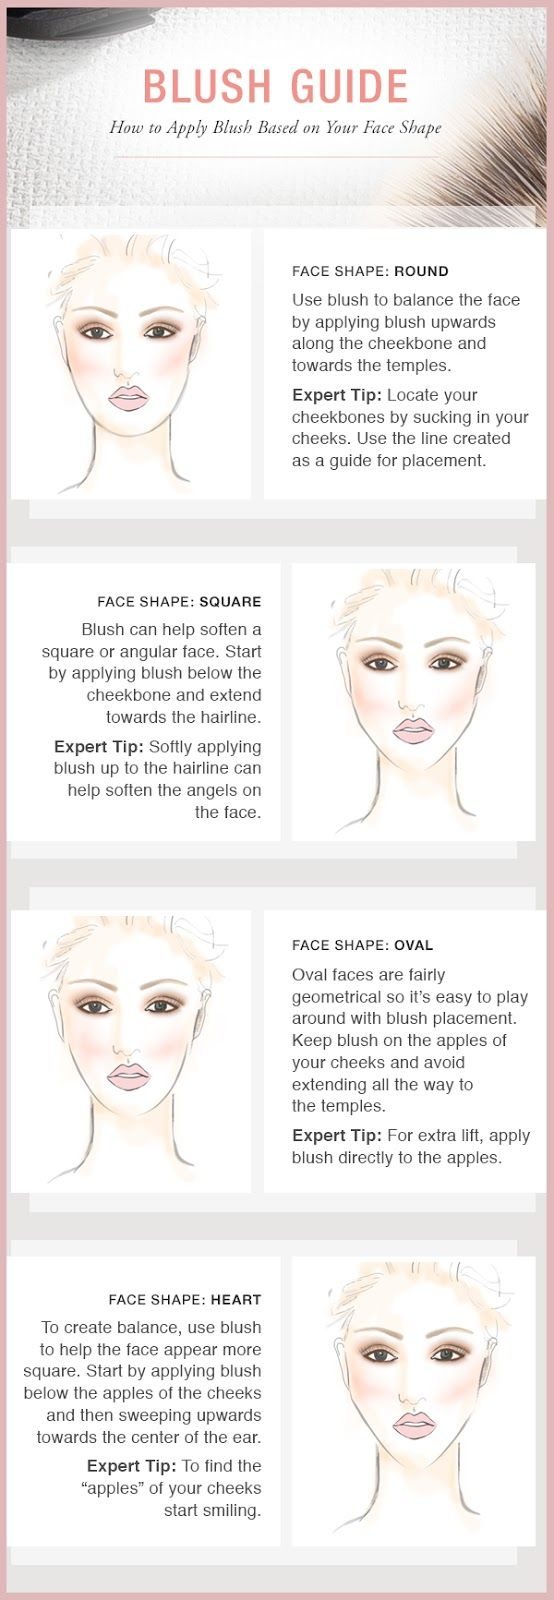 How to apply blush for your face shape. We can help you pick out the perfect glo Minerals blush & brush at Clear Waters Salon & Day Spa.